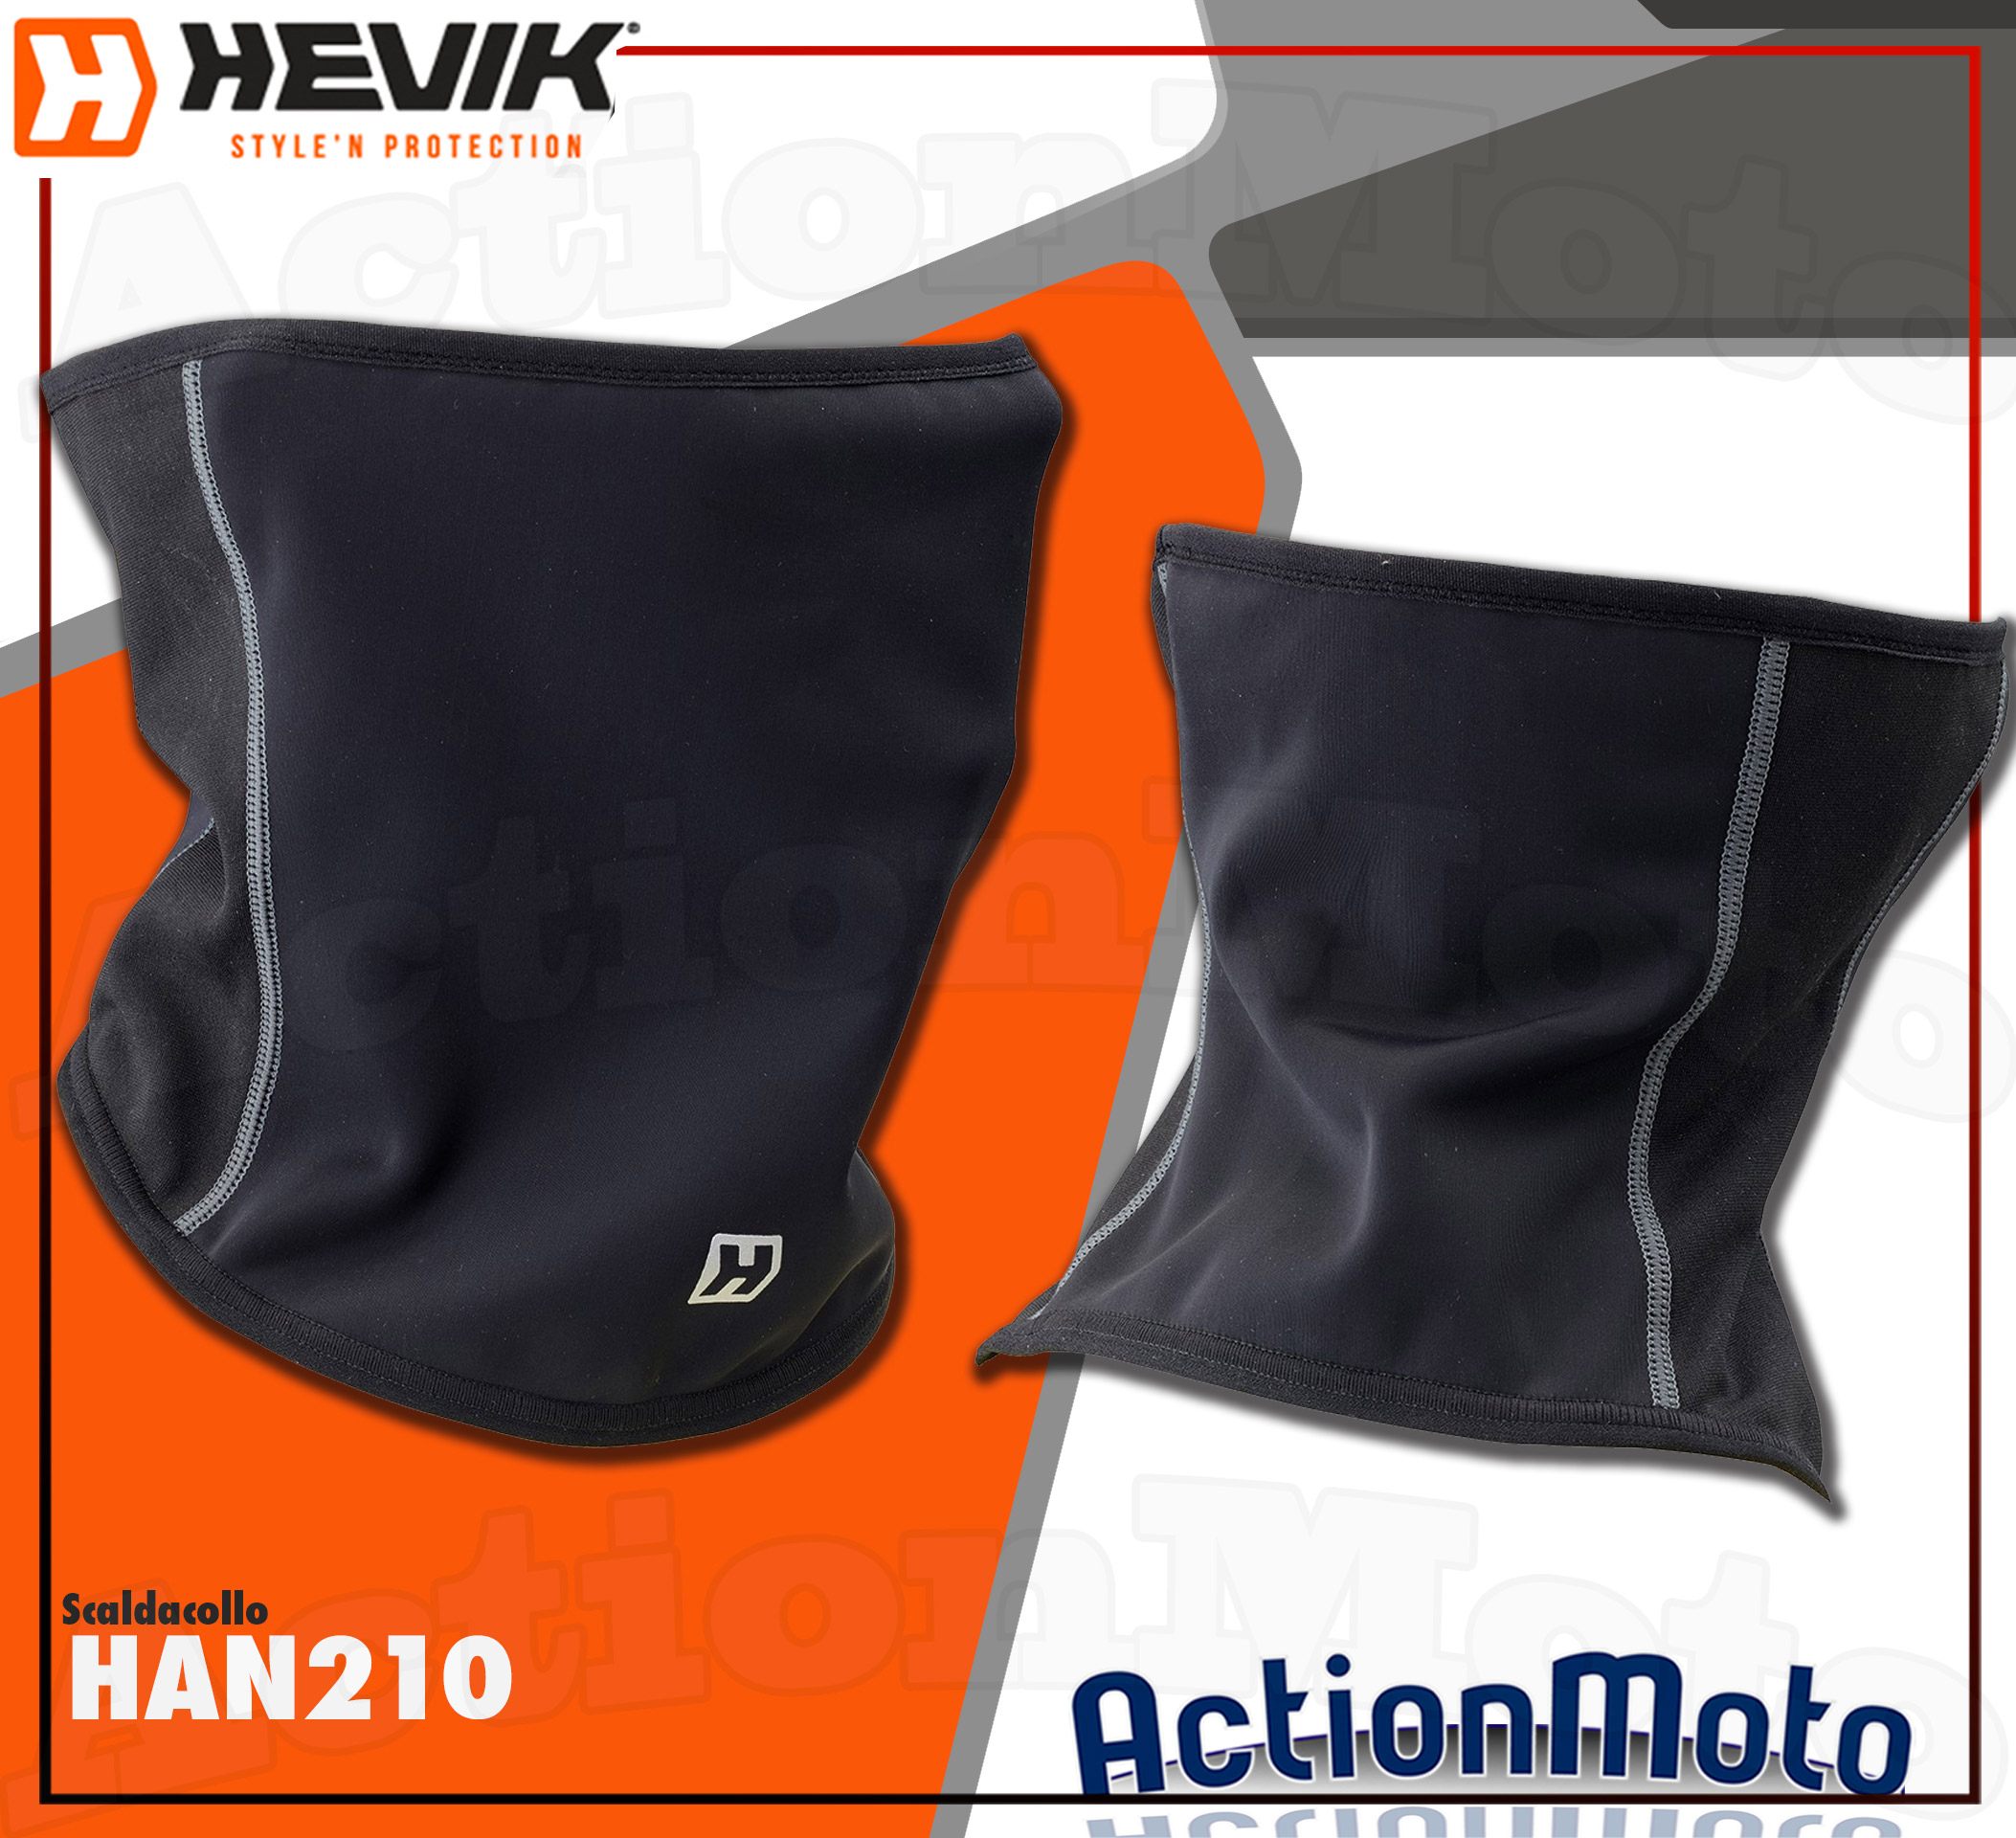 Copricollo scaldacollo antivento termico Hevik NECK WARMER HAN210 tecnico nero